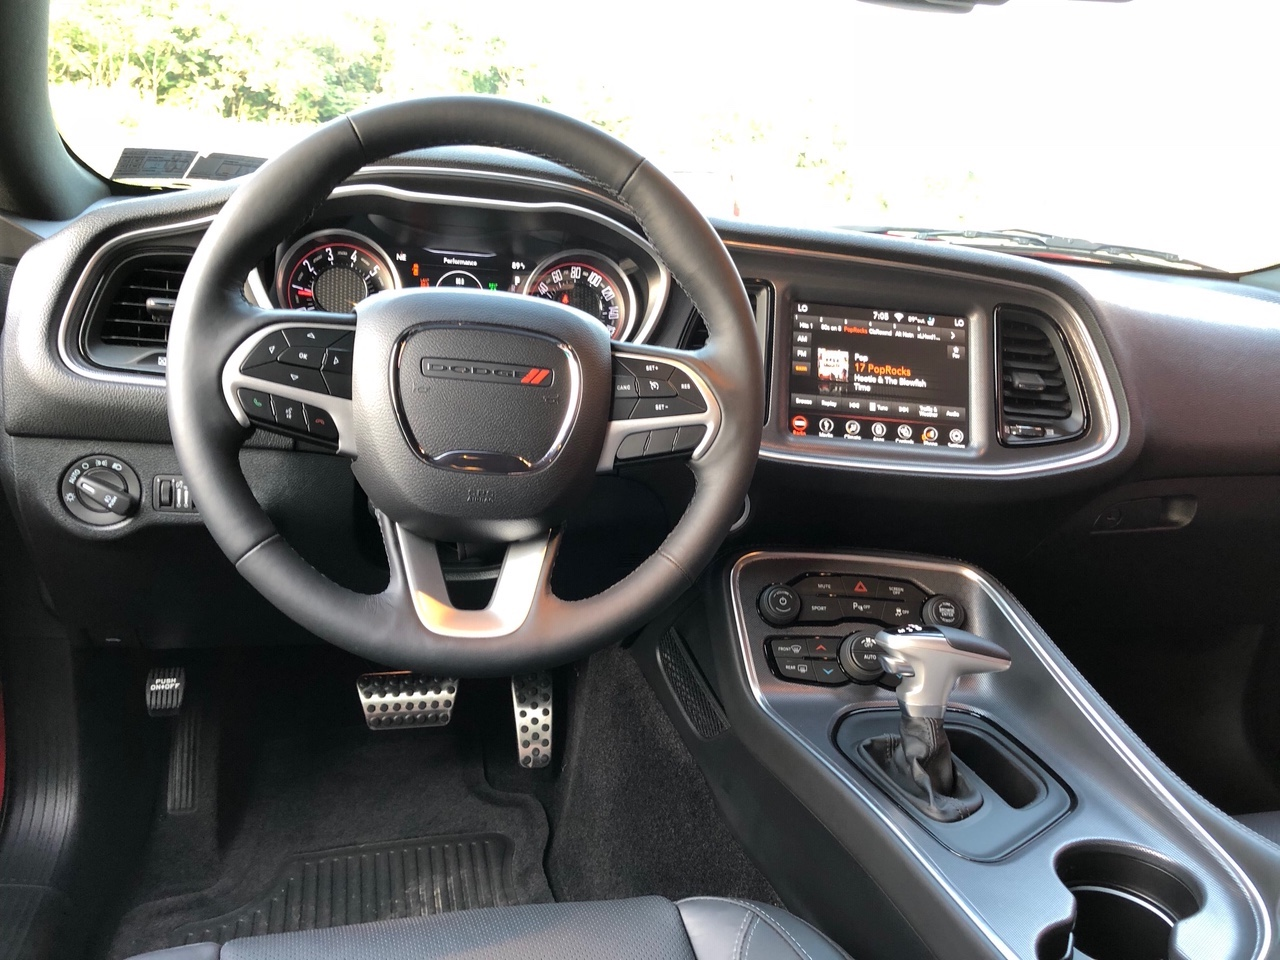 a photograph showing the steering wheel and dash of steve brice's 2018 dodge challenger